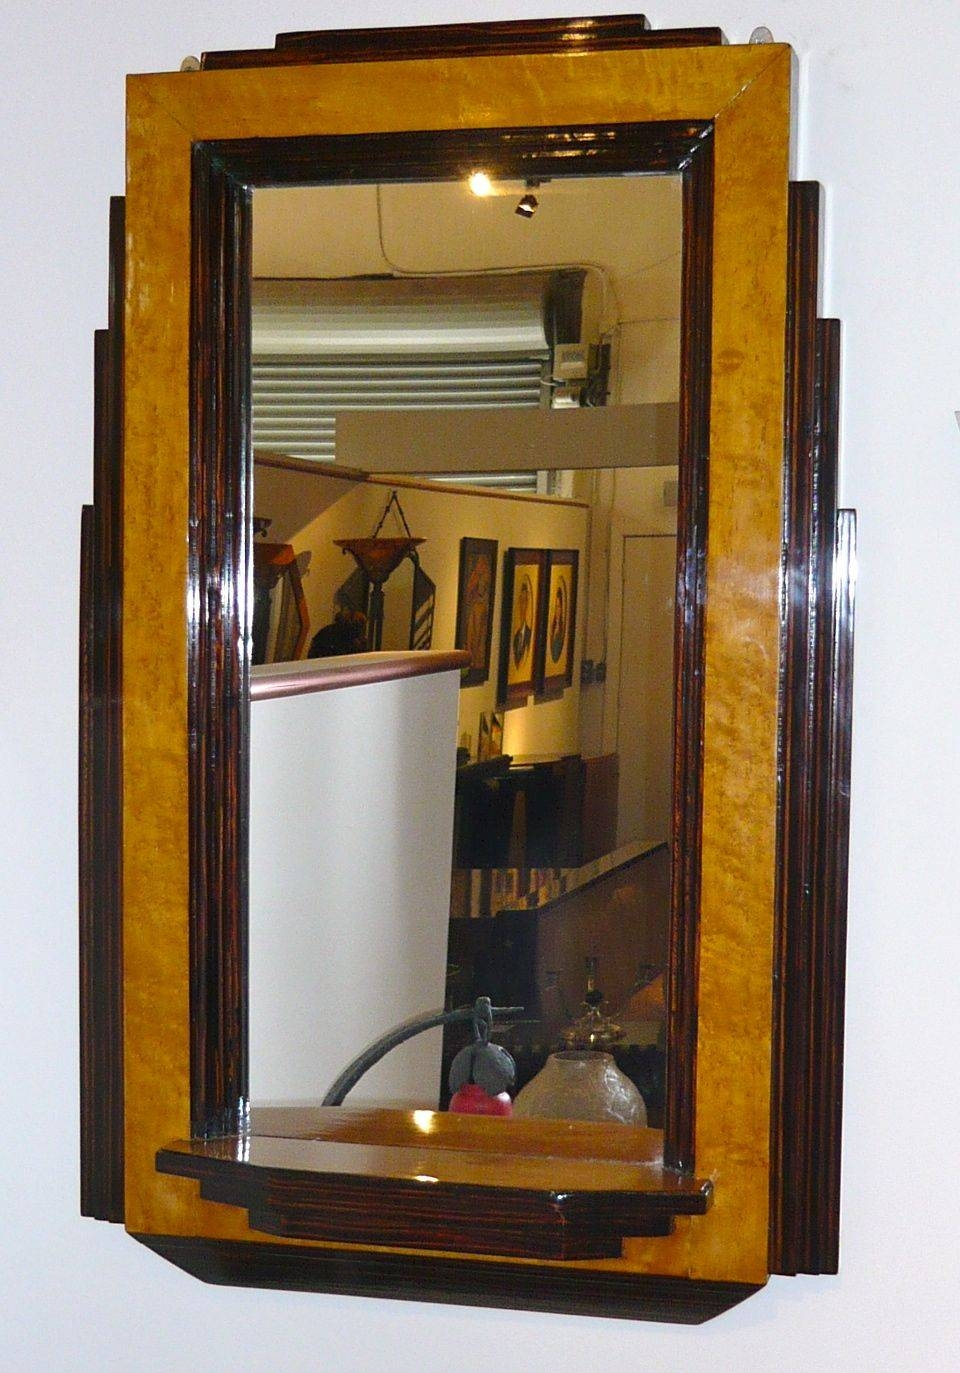 Art Deco Bedroom Furniture For Sale | Art Deco Collection intended for Large Art Deco Mirrors (Image 4 of 25)